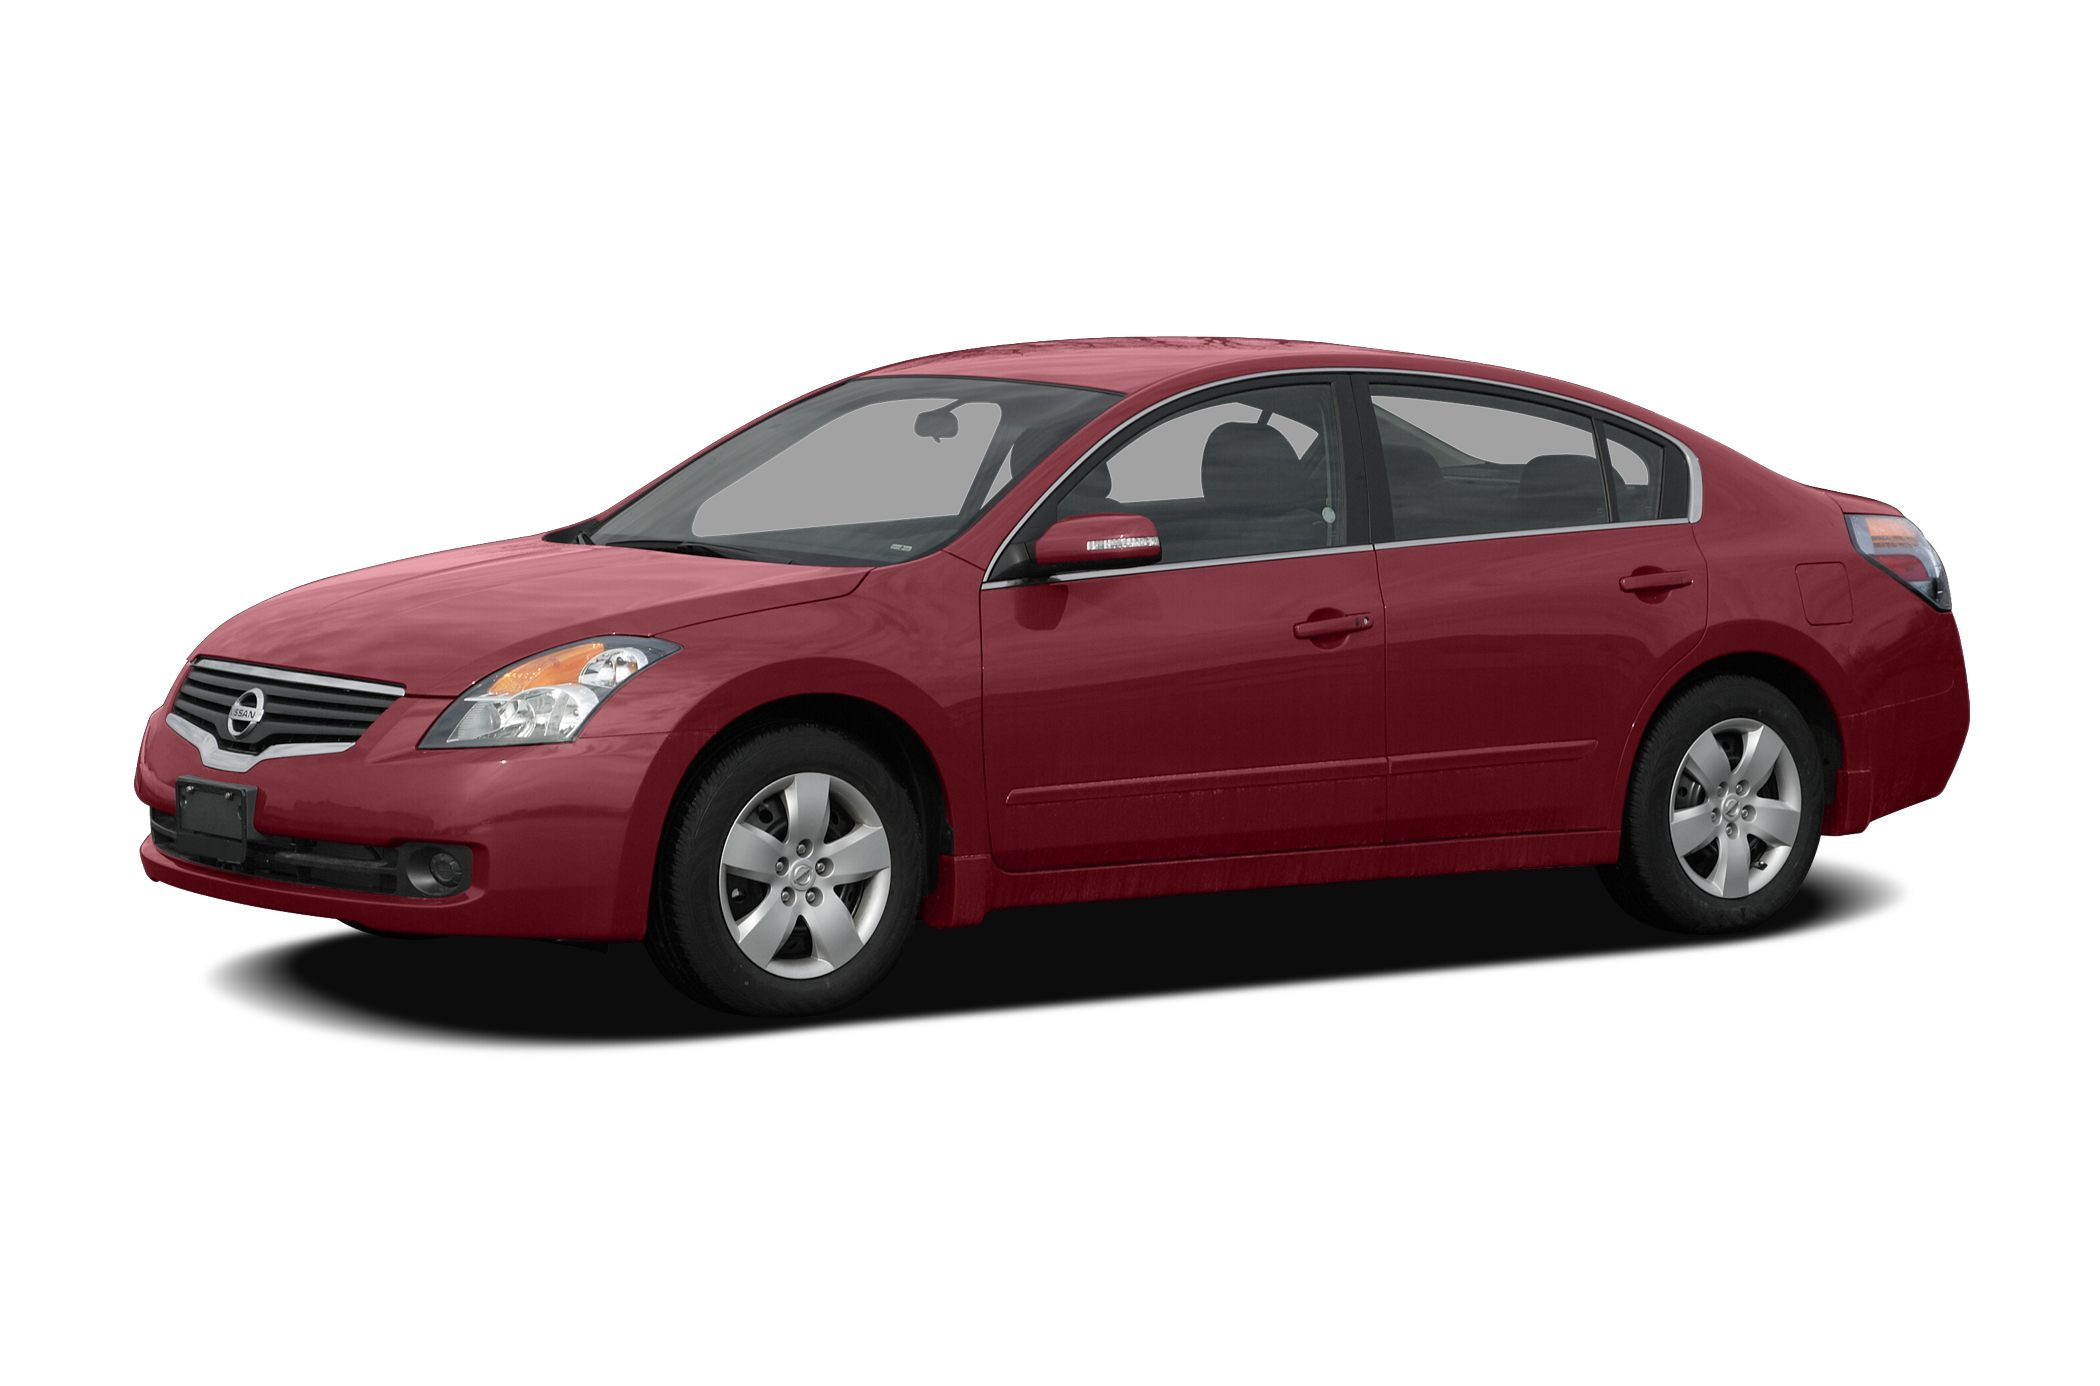 2007 Nissan Altima 2.5 S Sedan for sale in Hanford for $10,595 with 87,908 miles